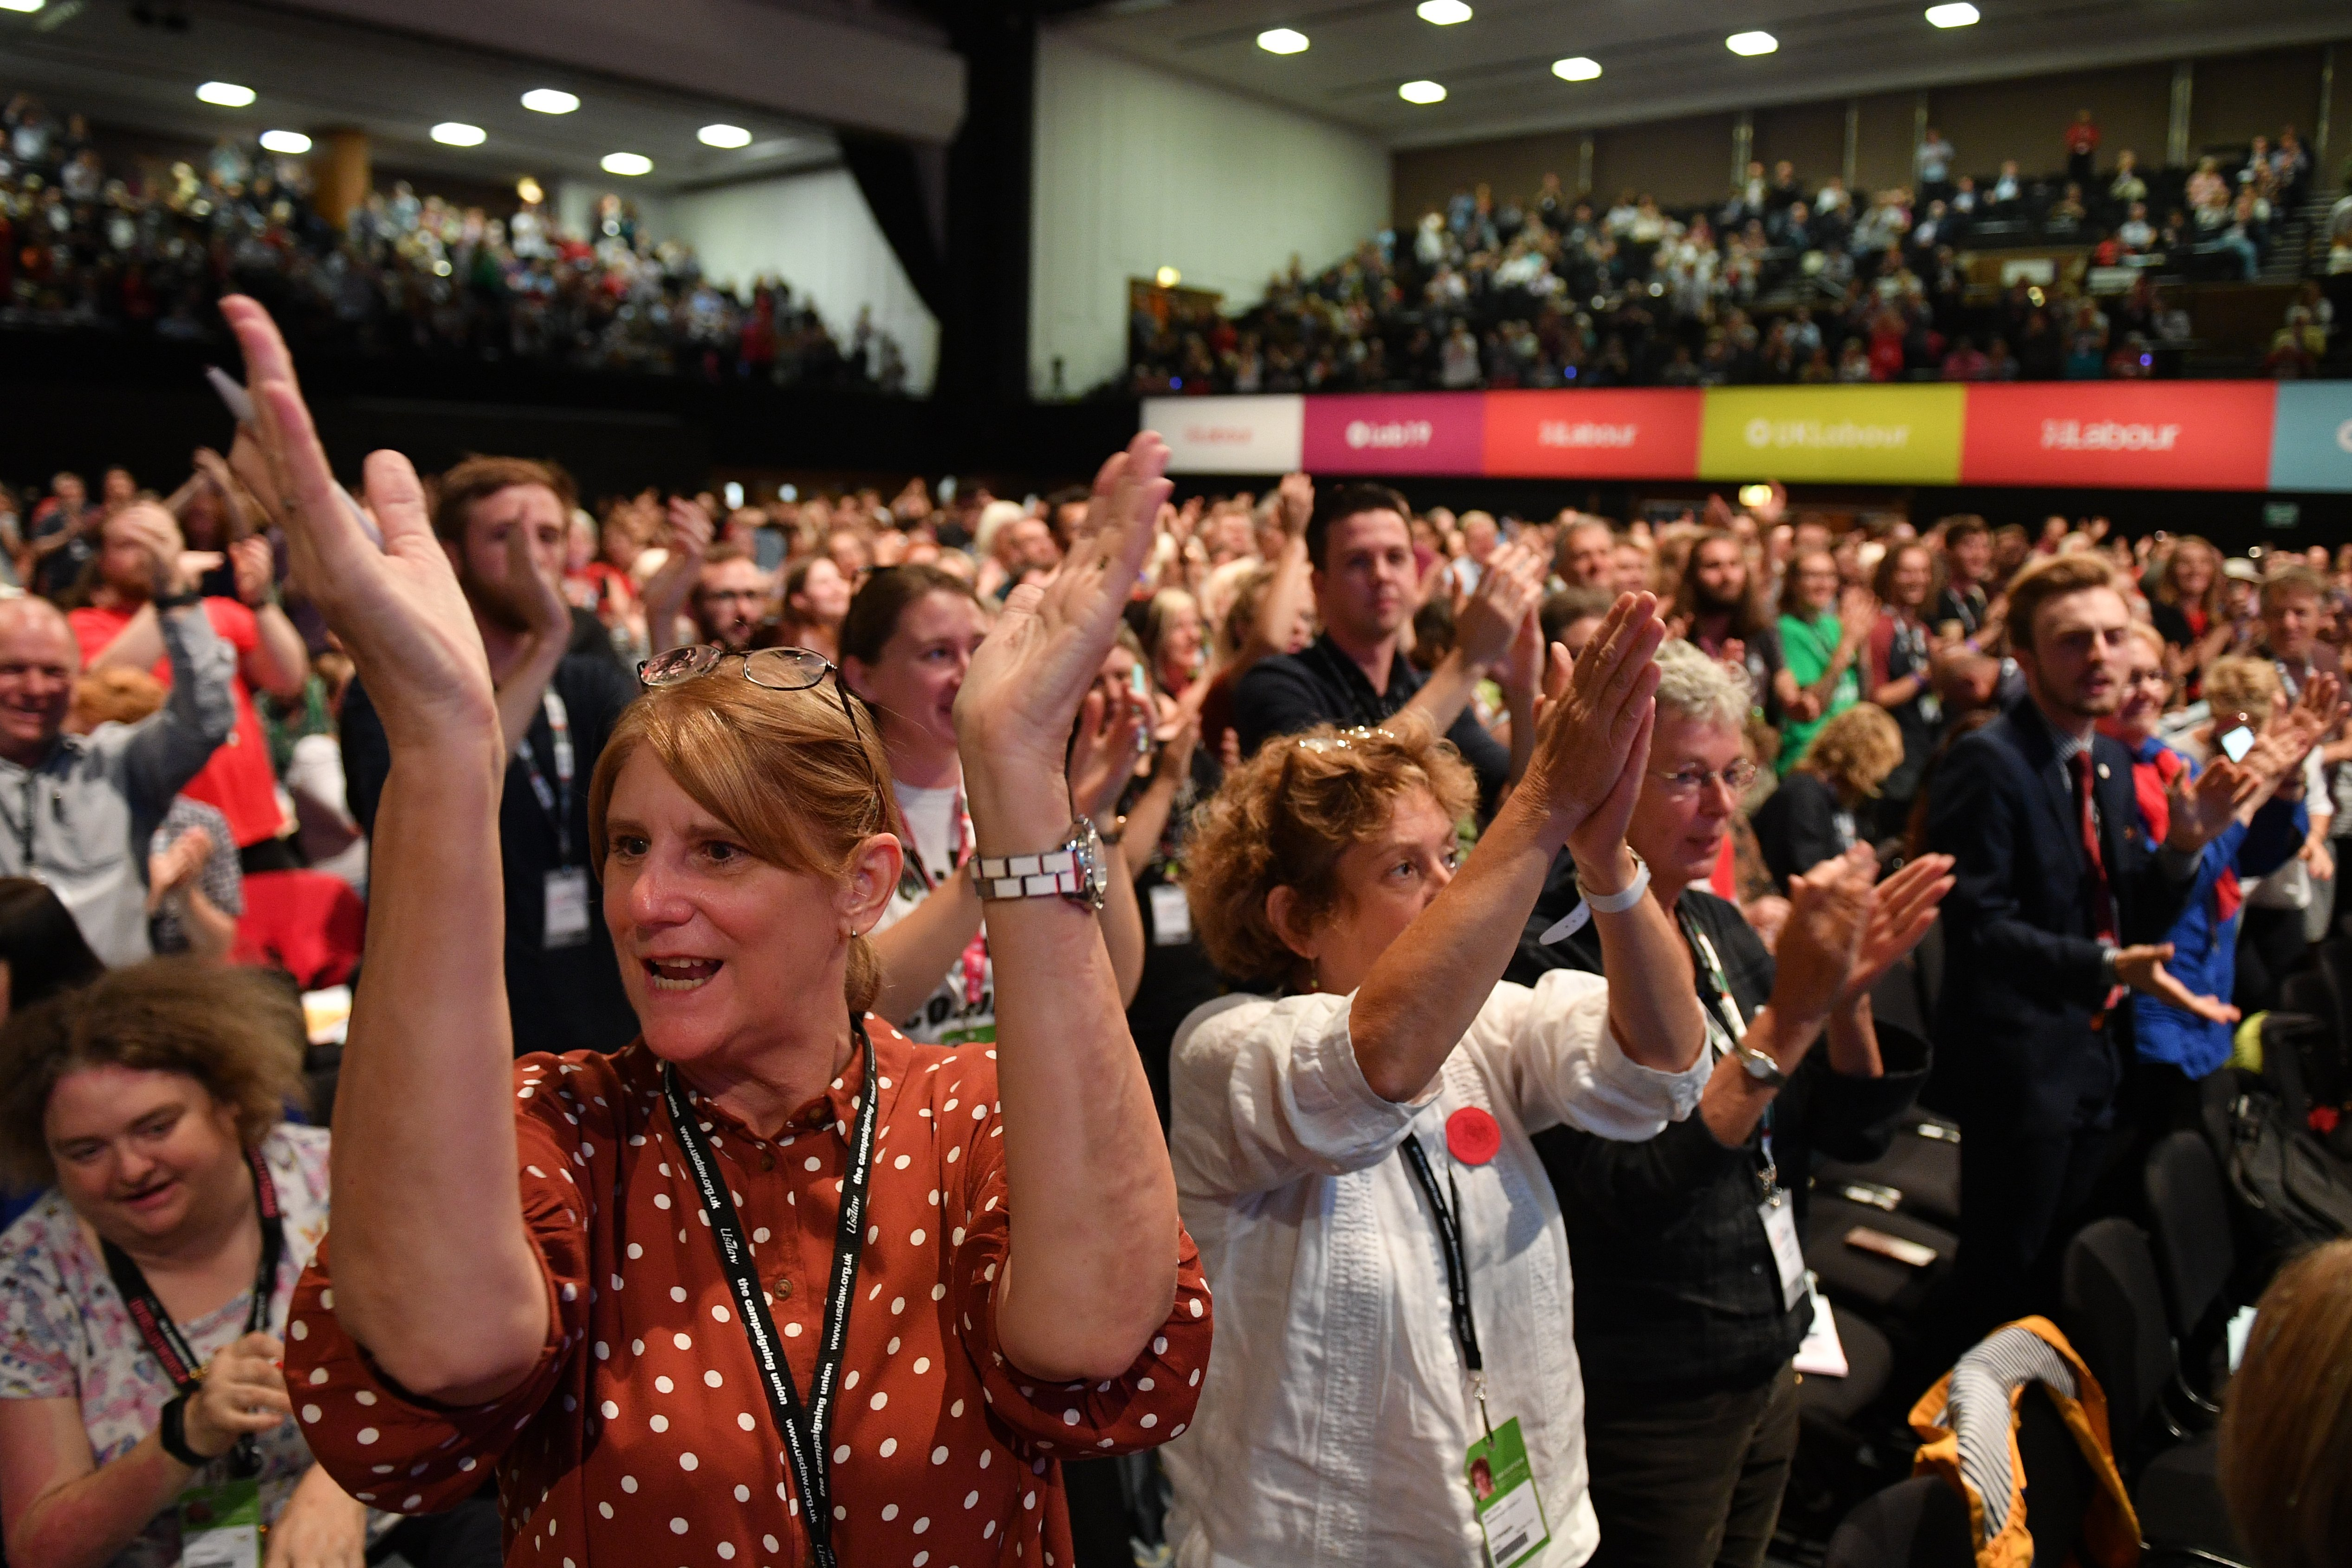 A standing ovation is given for Unite union general secretary Len McCluskey after he delivers a speech at the Labour party conference in Brighton (AFP)